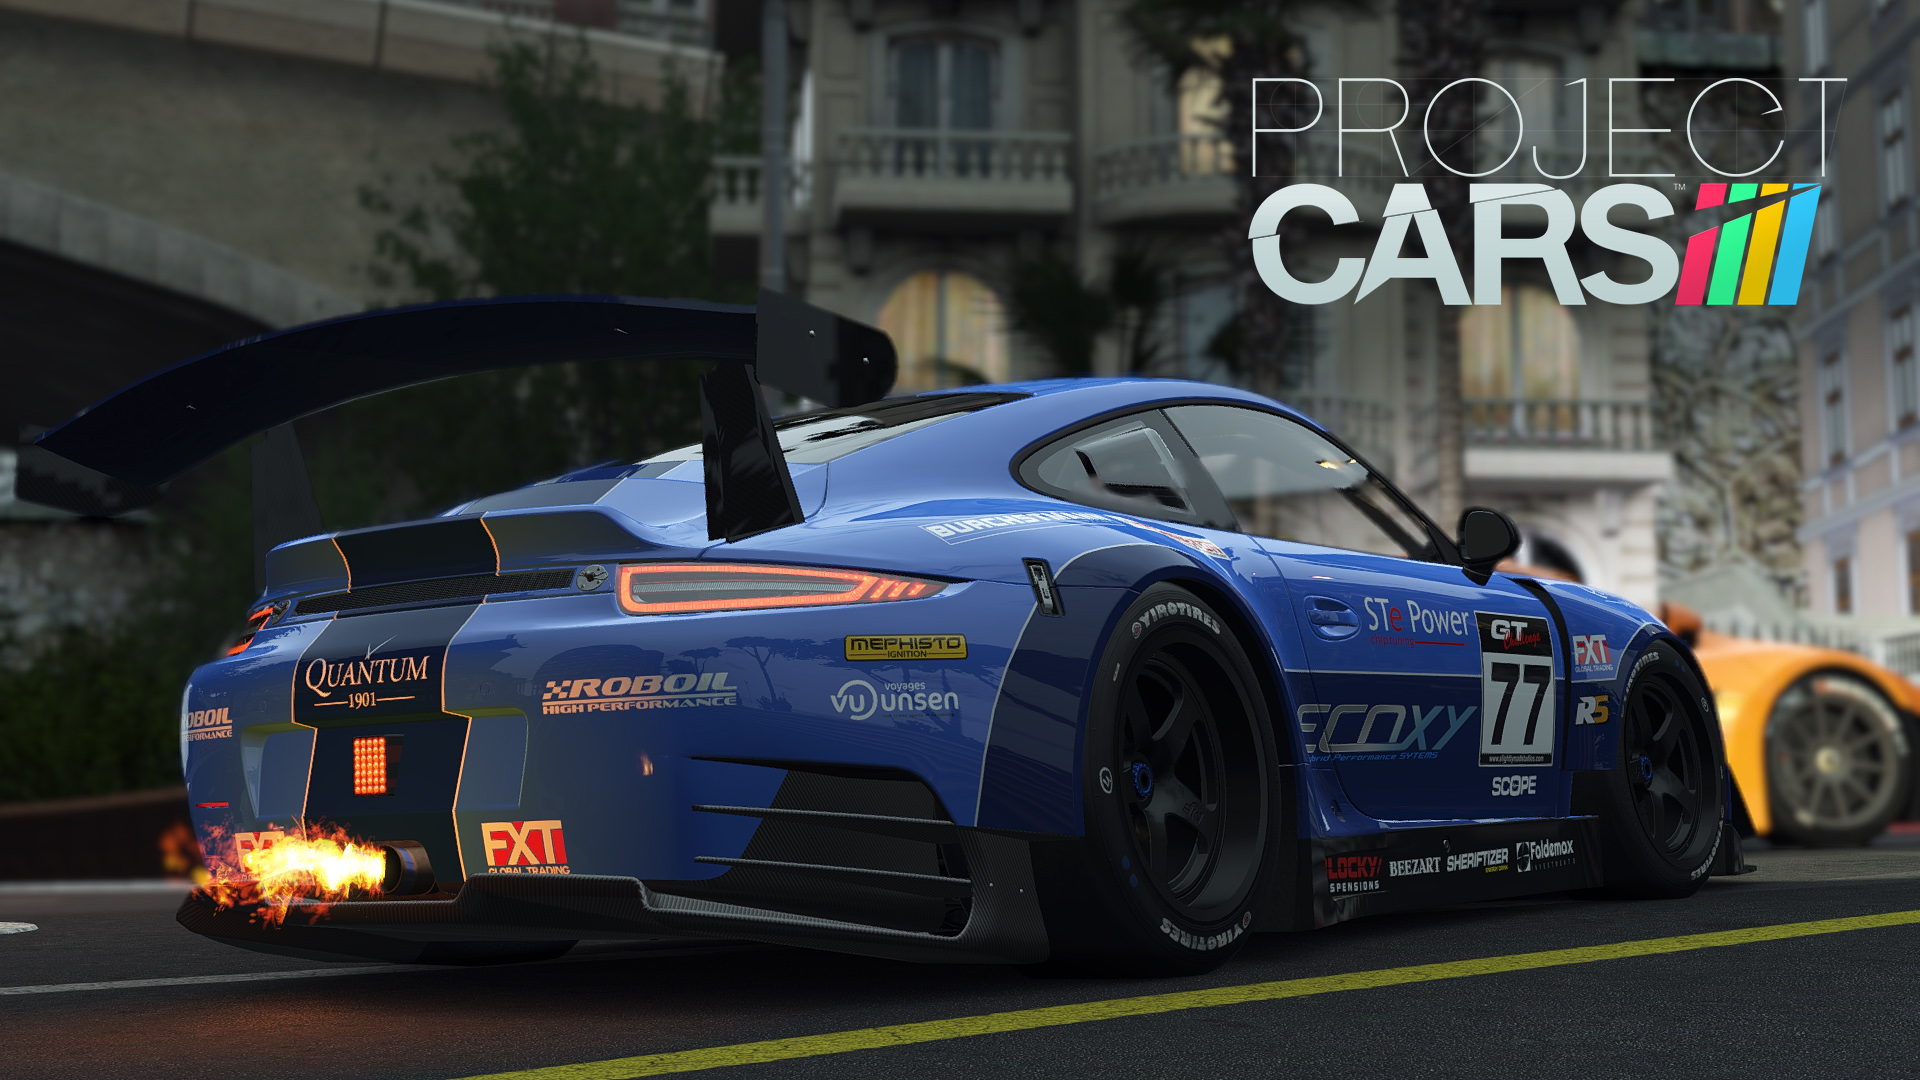 project cars is 1080p on ps4 900p on xbox one and up to. Black Bedroom Furniture Sets. Home Design Ideas